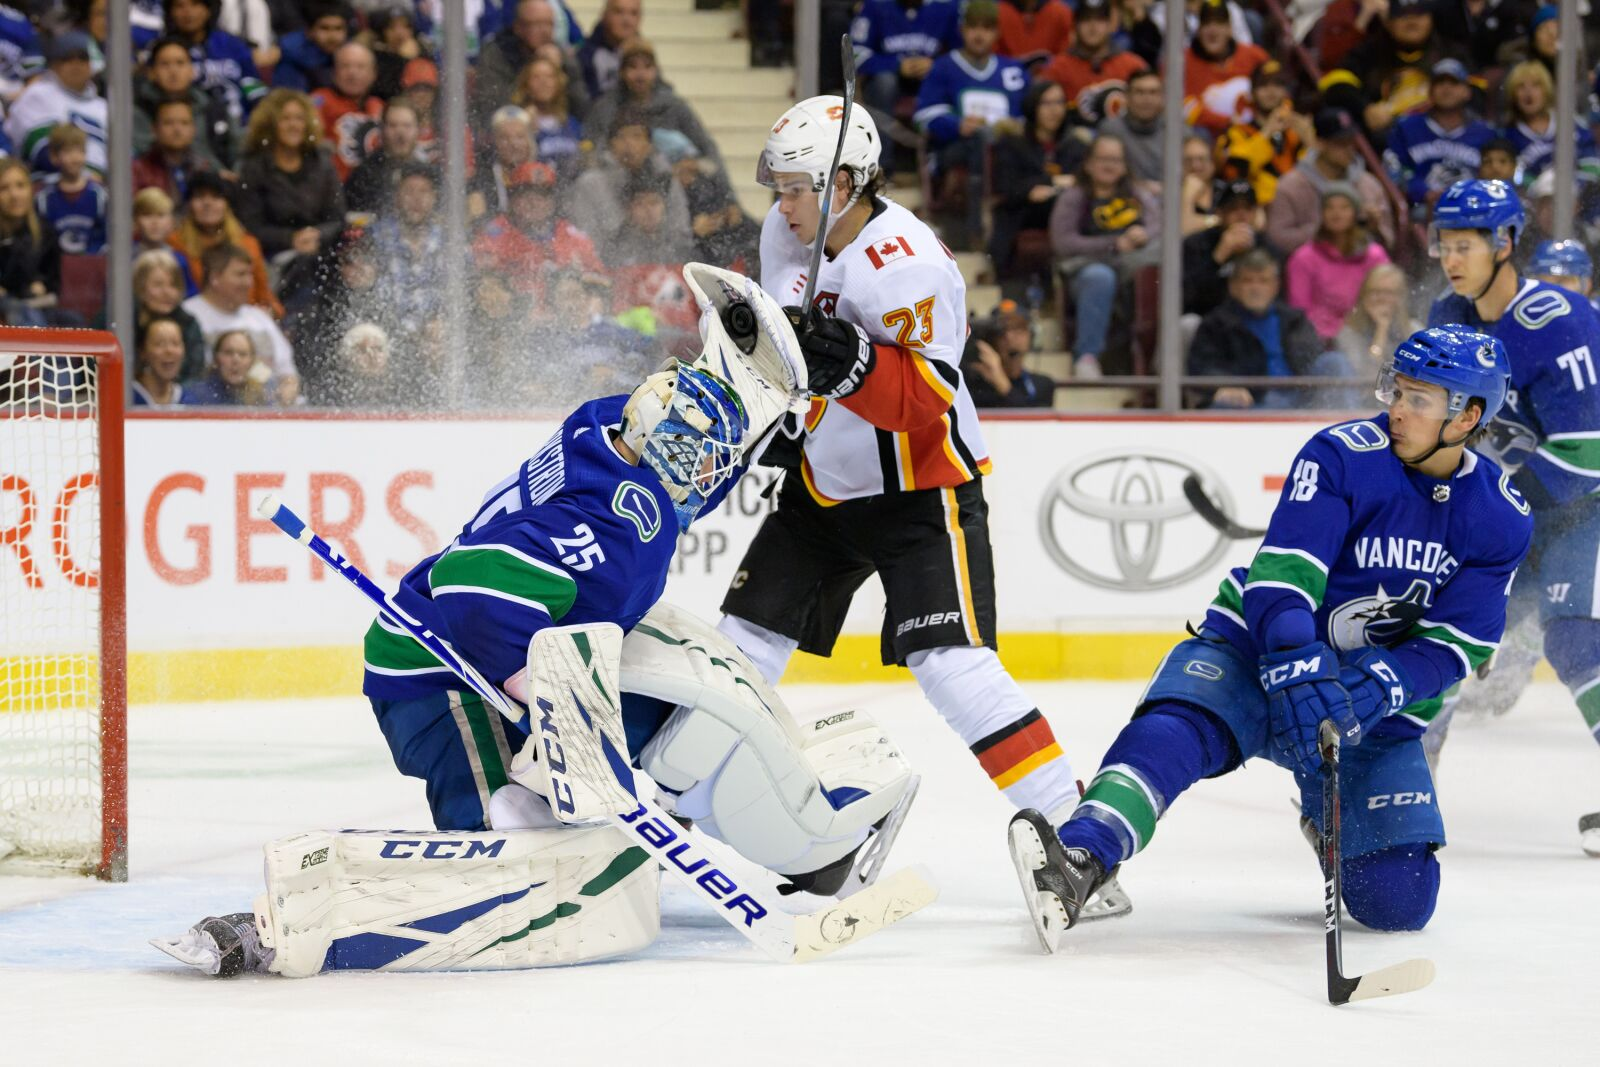 Vancouver Canucks: 3 takeaways from 4-3 win over Calgary Flames